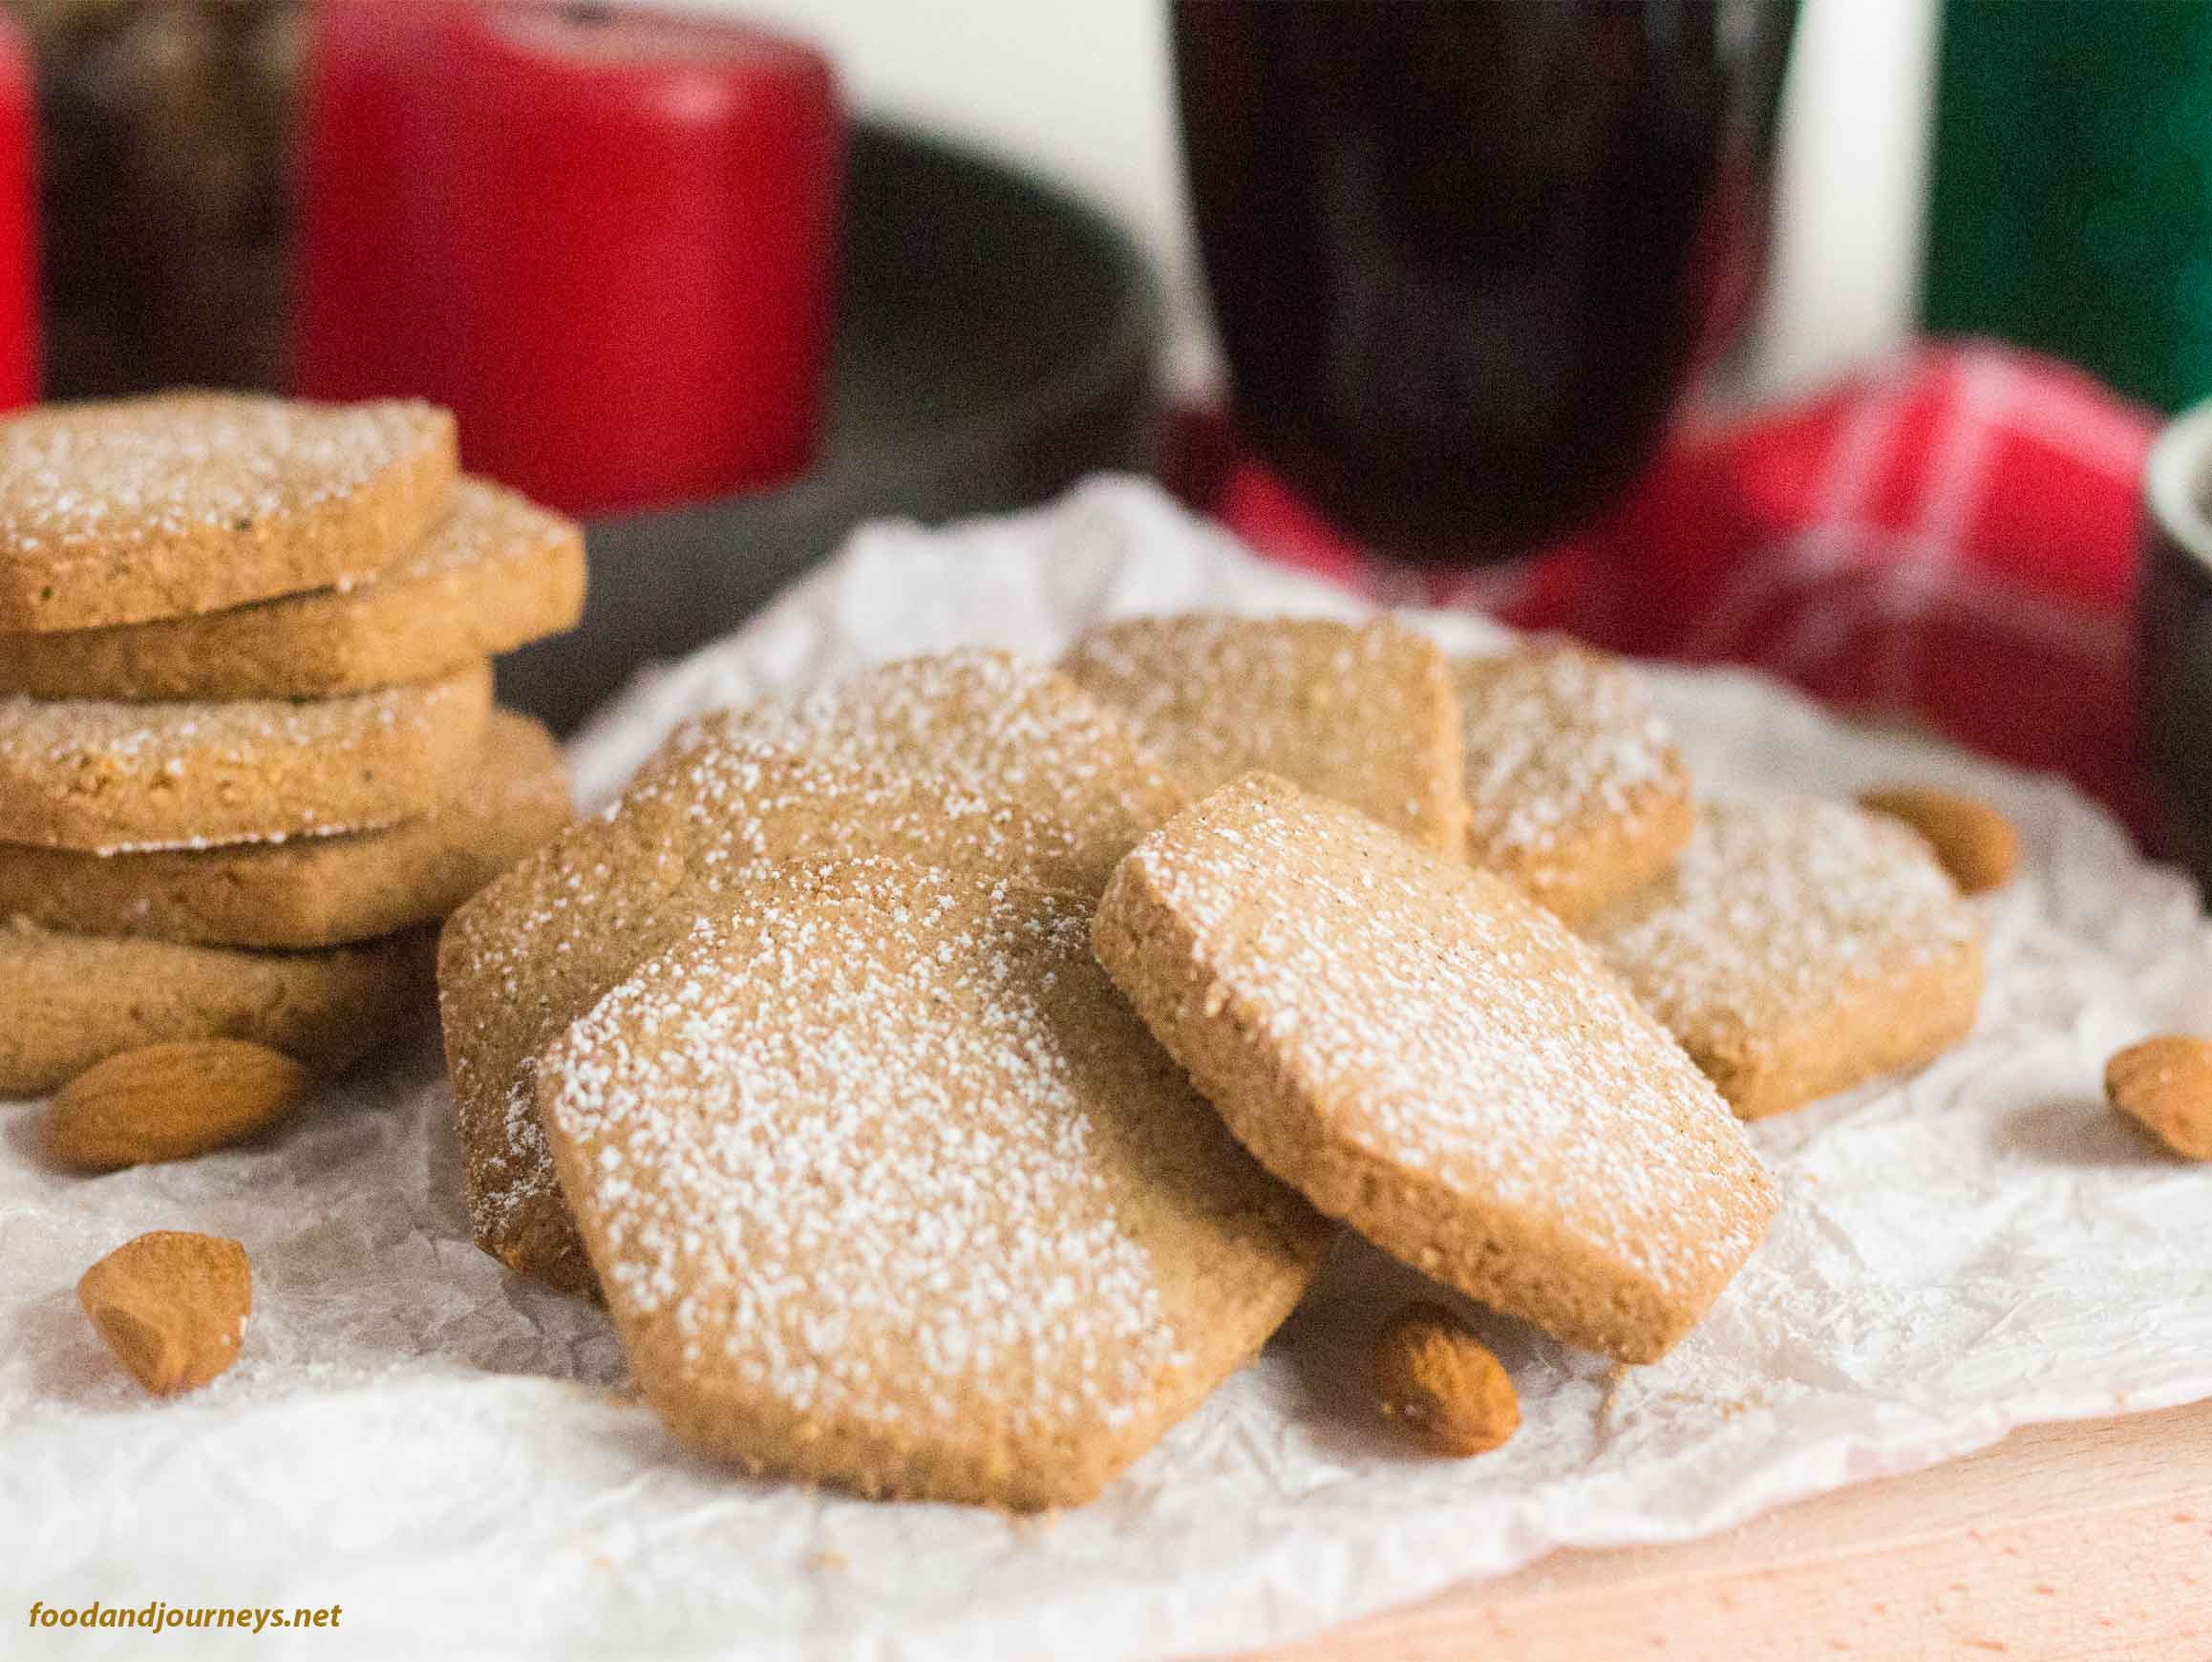 Polvorones (Spanish Christmas Biscuits) arranged in a circular manner and dusted with powdered sugar.